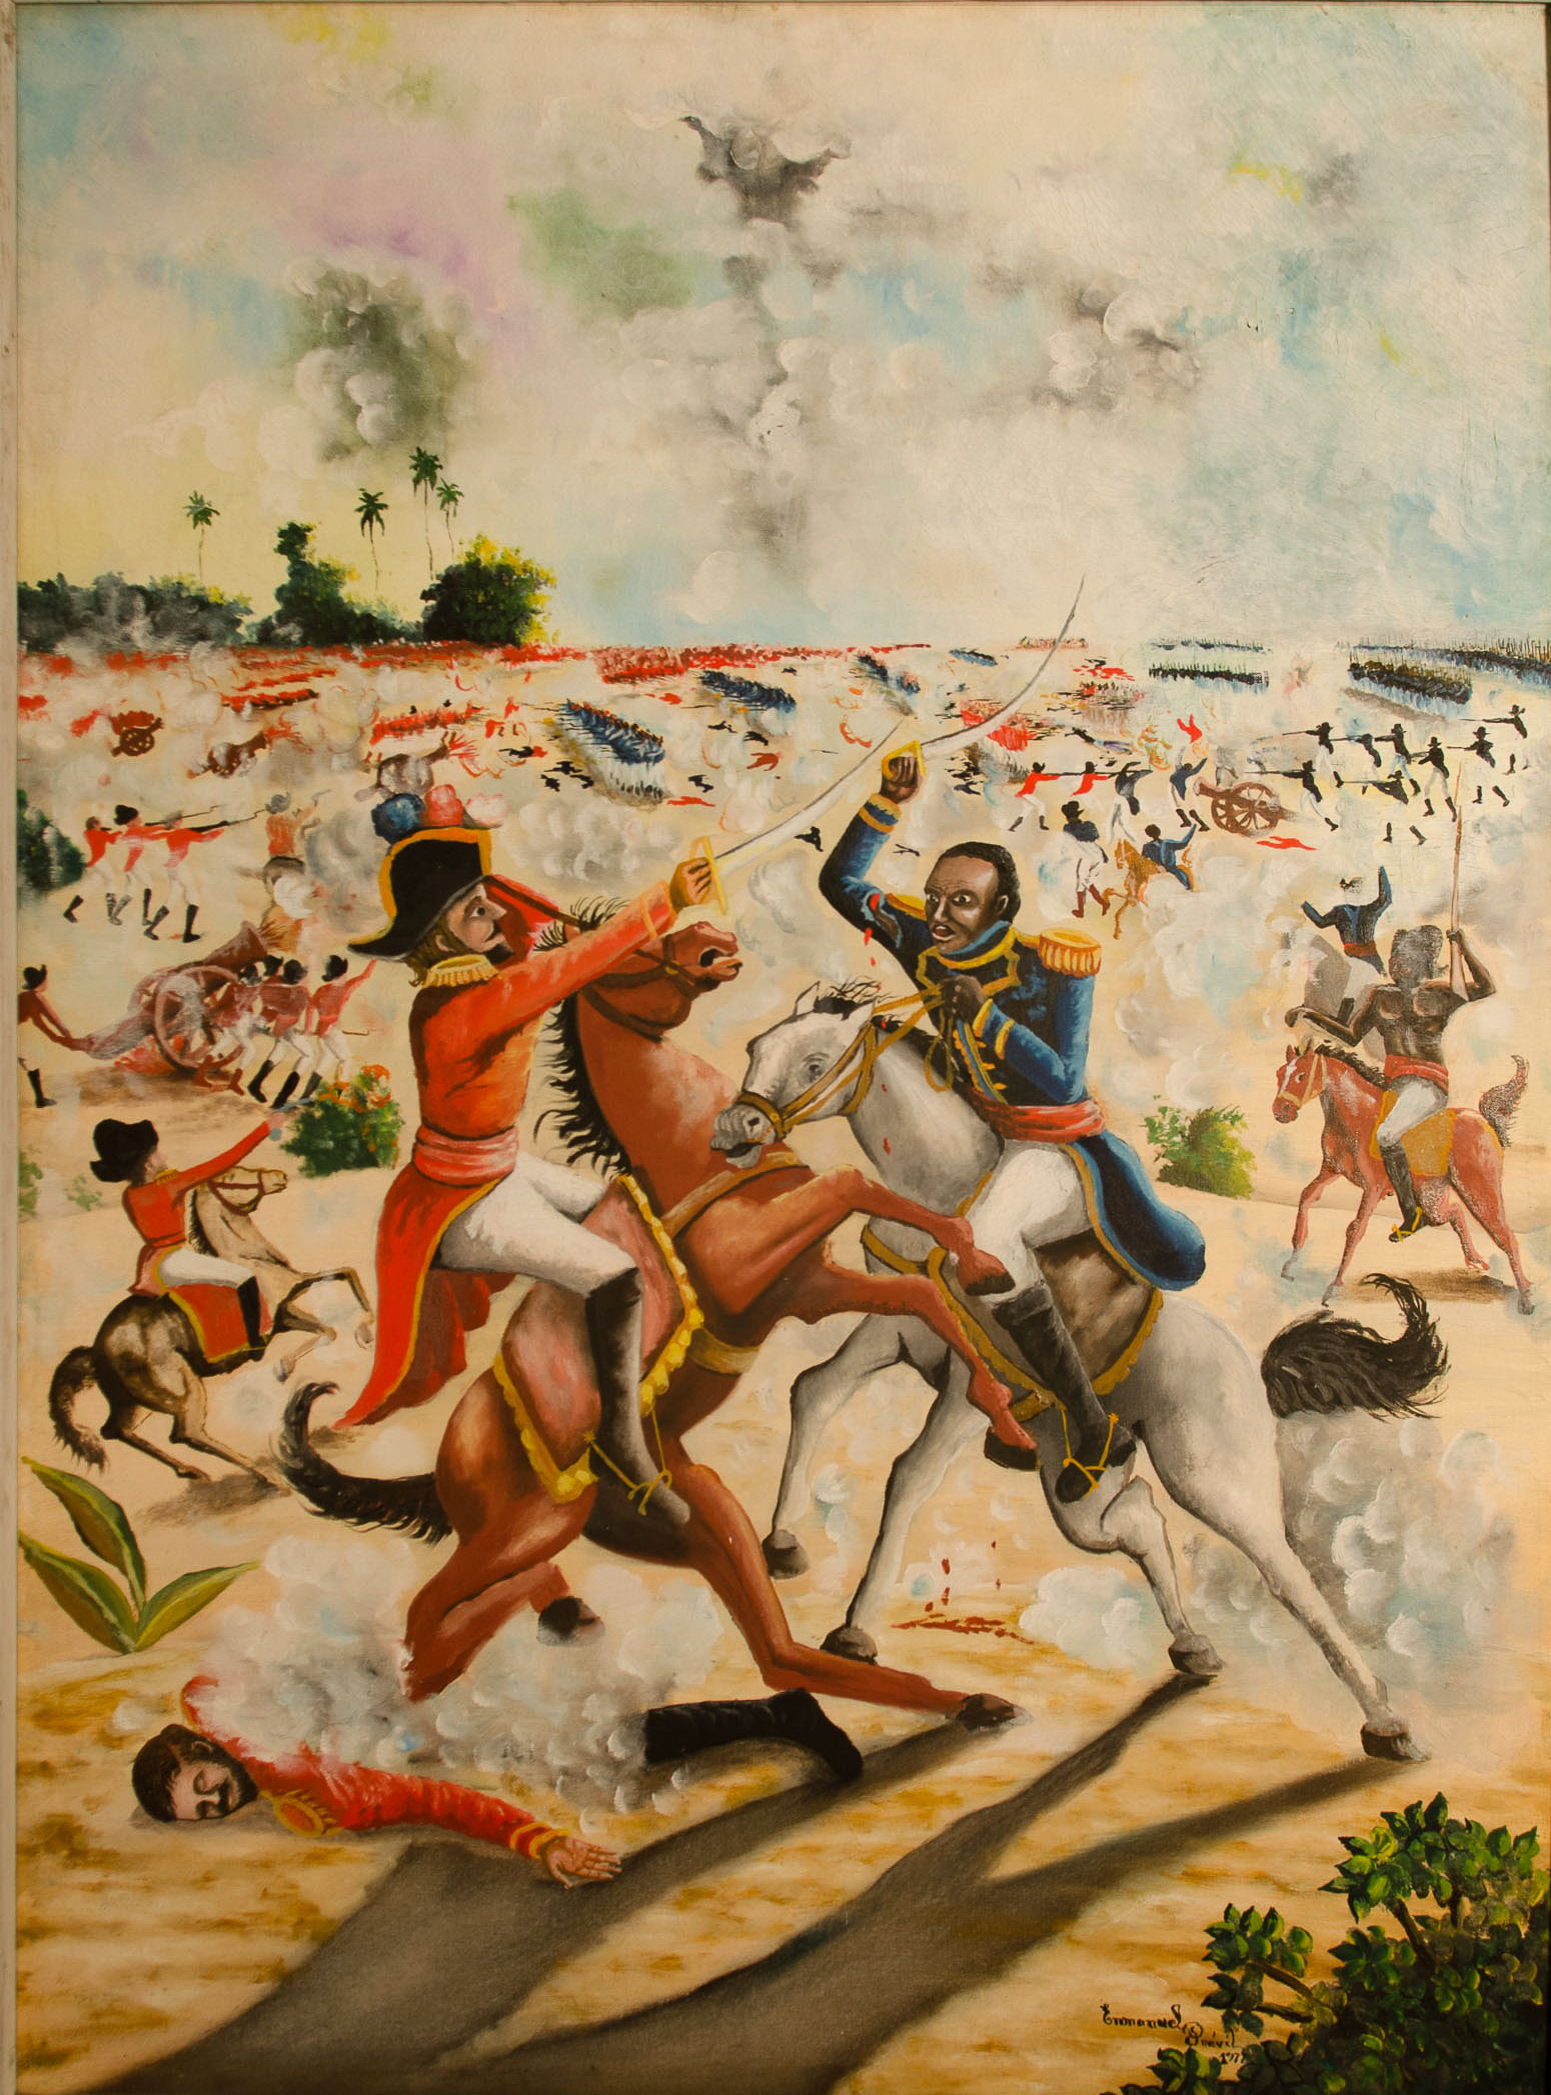 Generals Battle on horseback, 1977